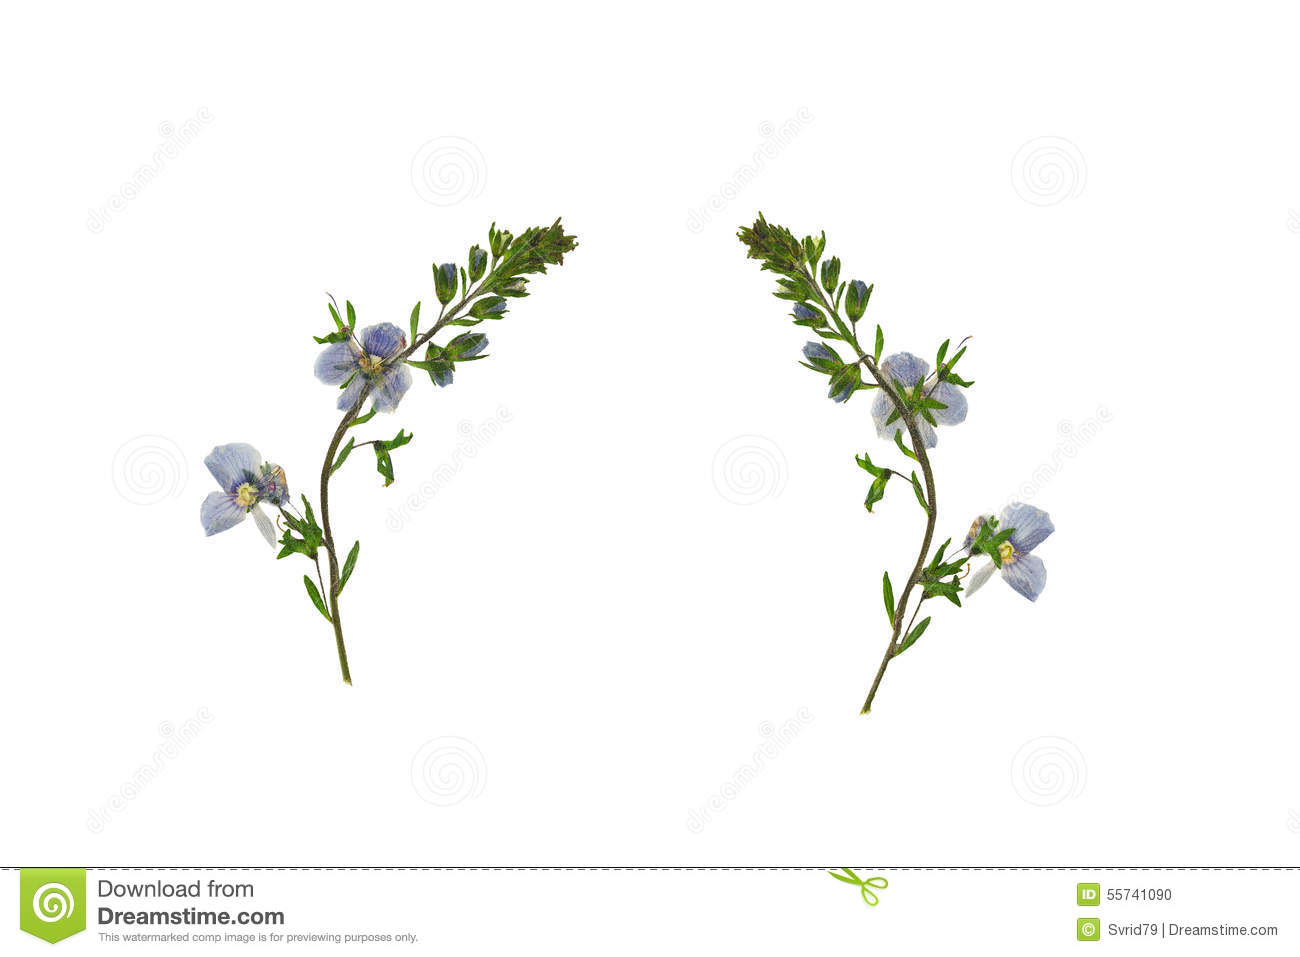 Pressed And Dried Flower Veronica Officinalis Isolated On White